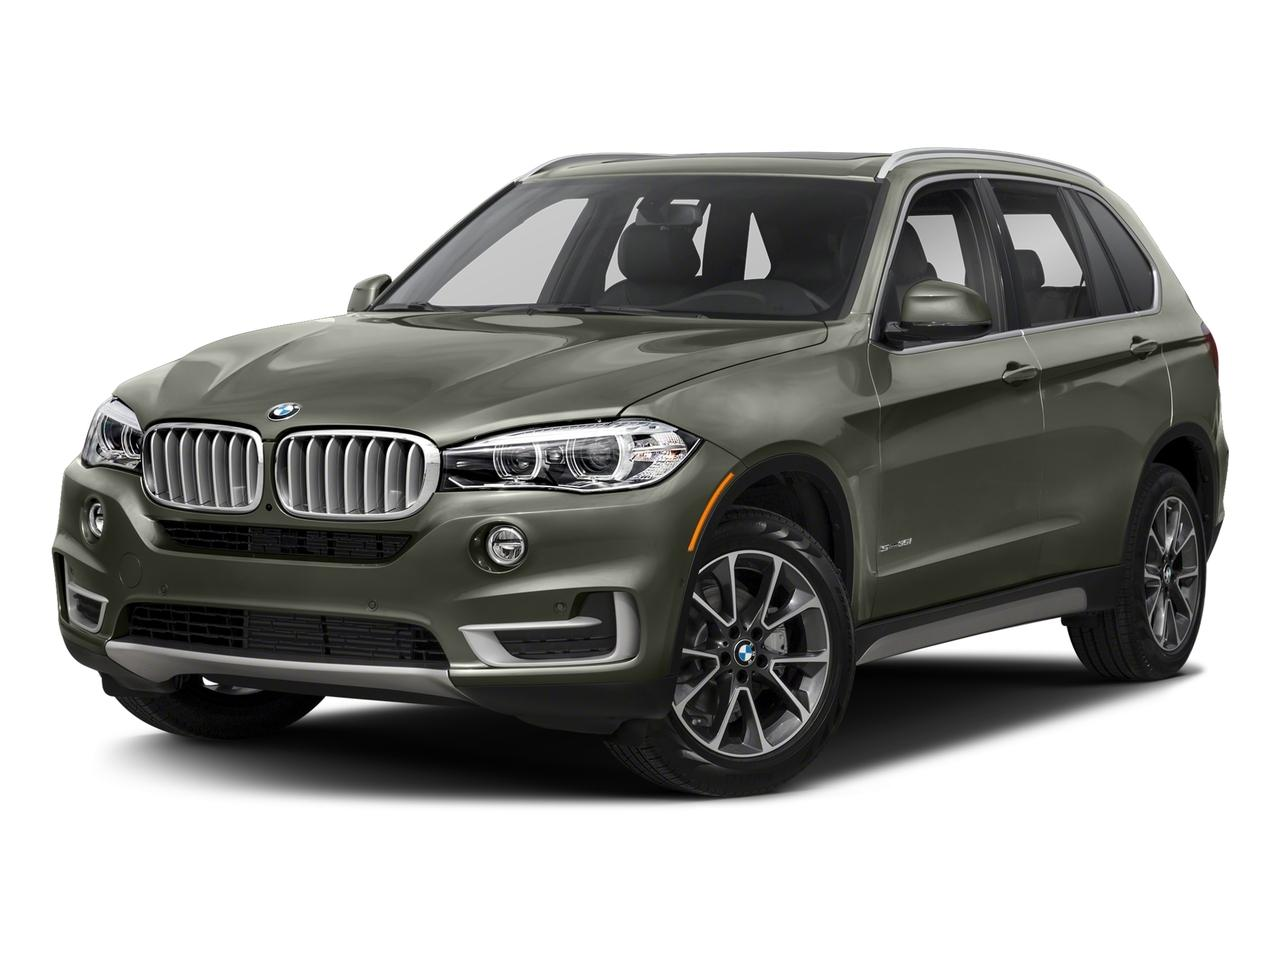 2018 BMW X5 xDrive35i Vehicle Photo in HOUSTON, TX 77002